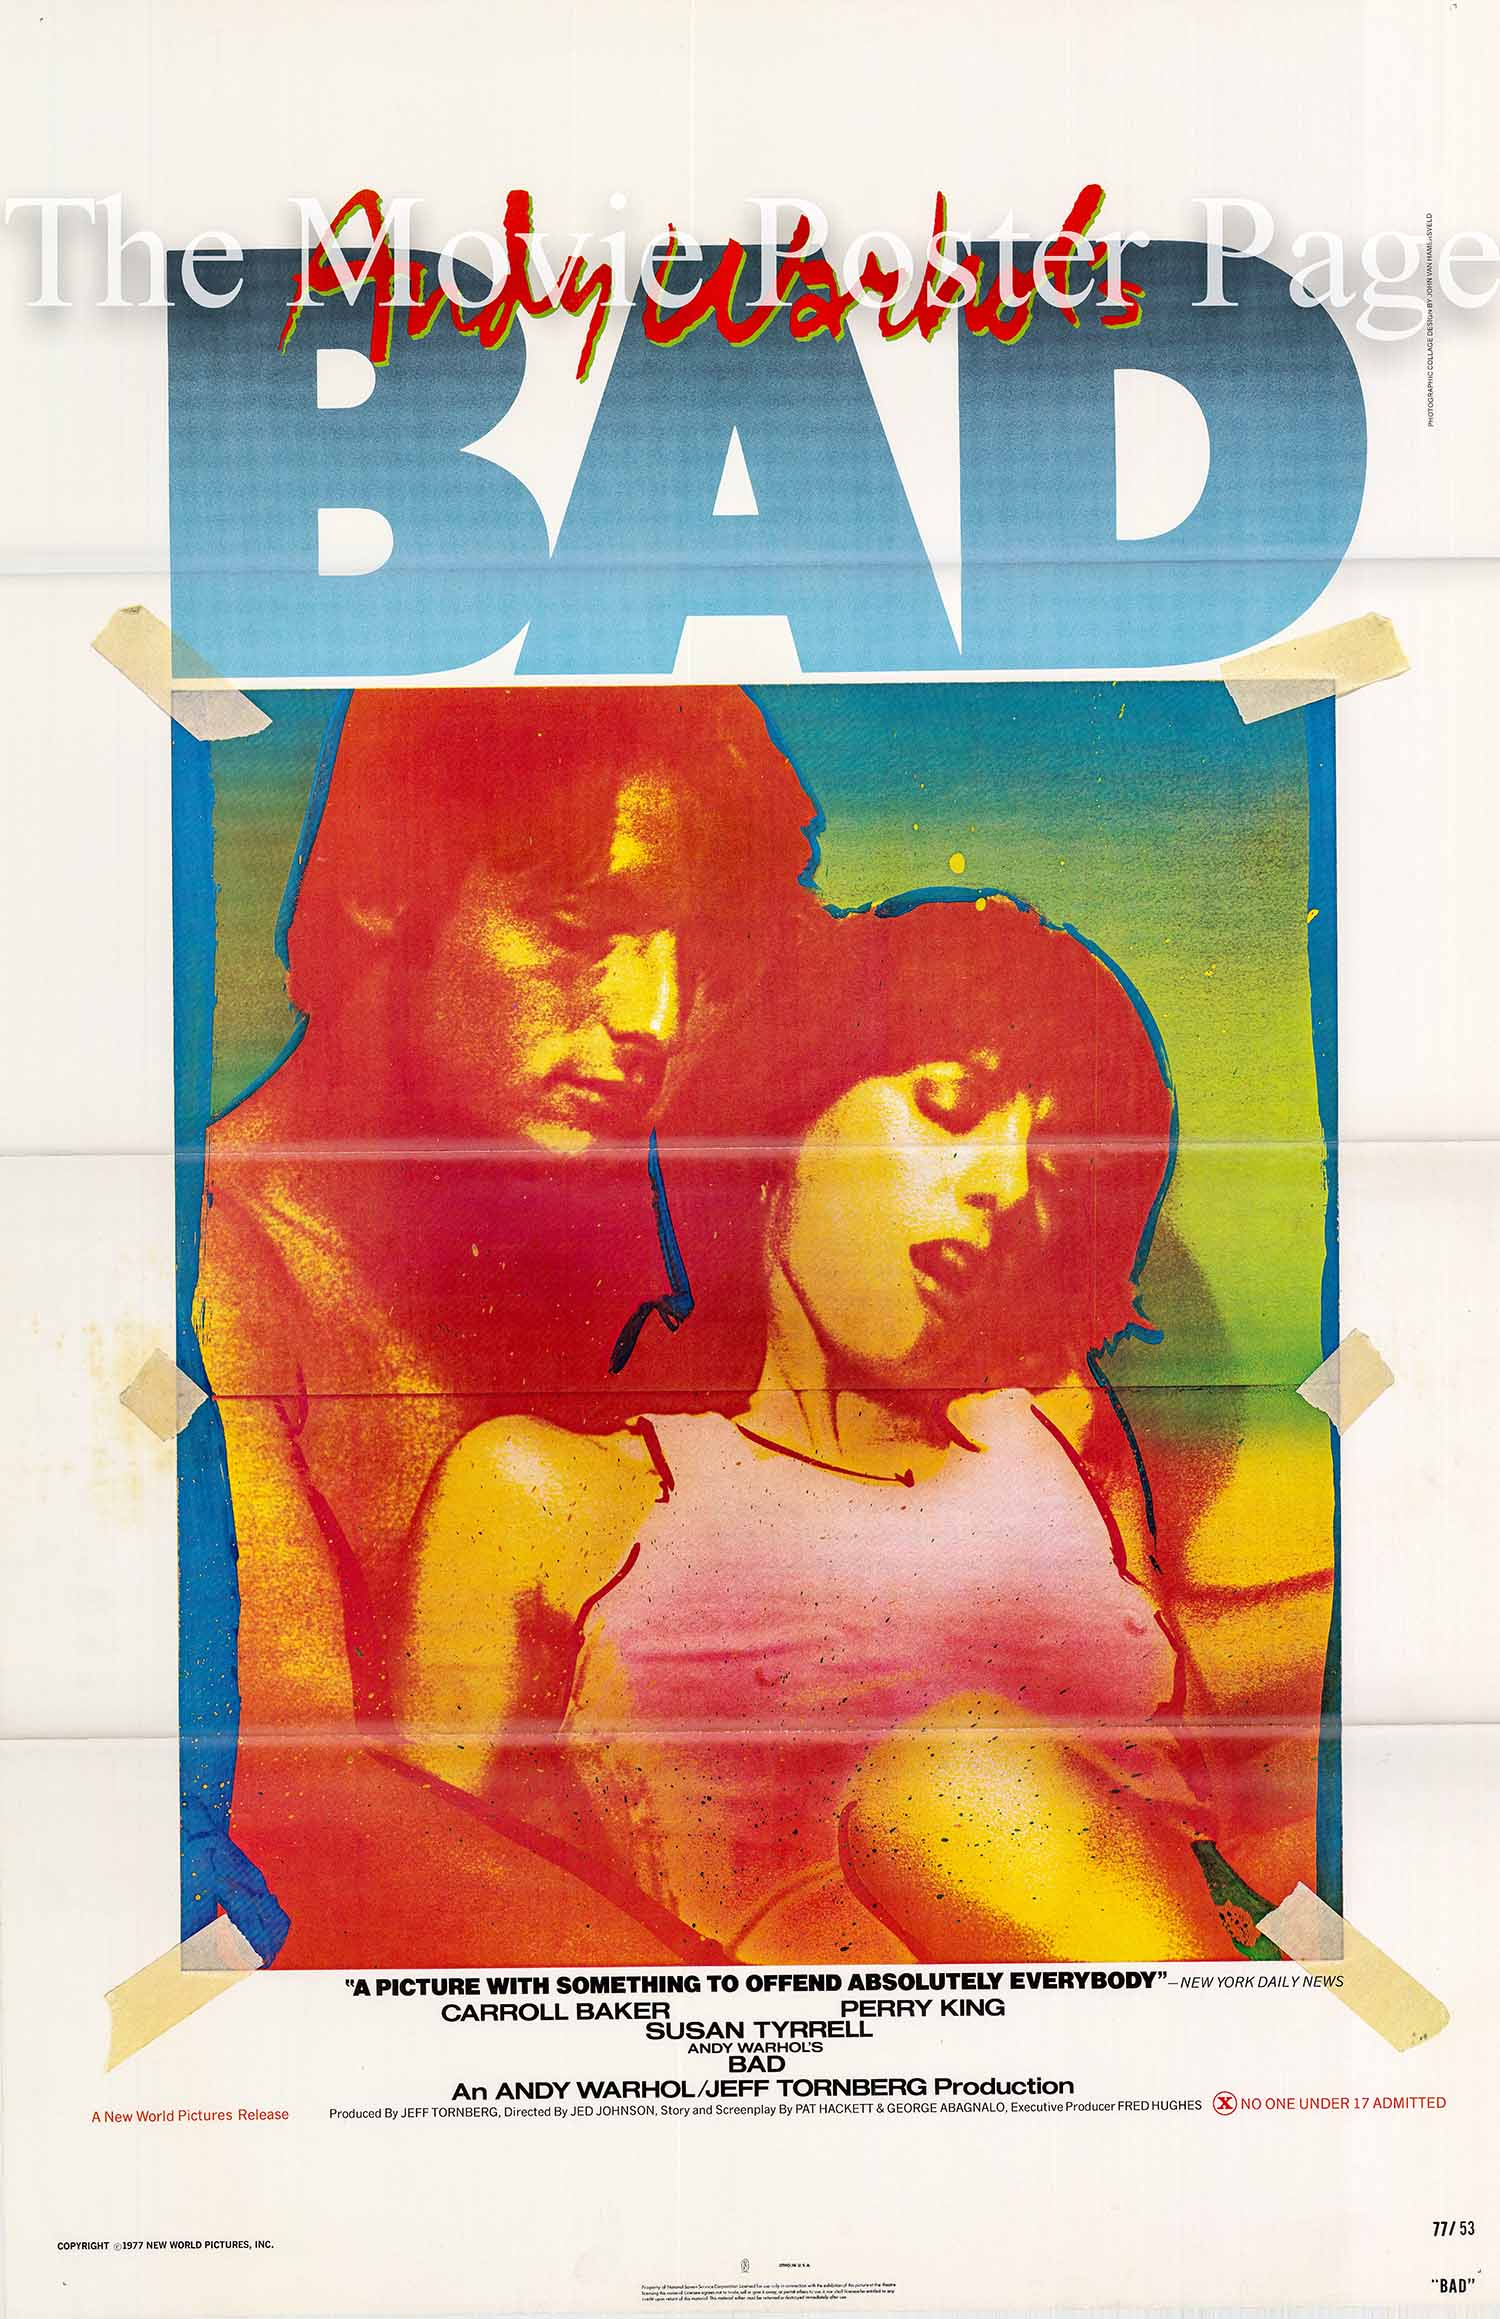 Pictured is a US promotional poster for the 1977 Jed Johnson film Andy Warhol's Bad, starring Cyrinda Foxe.